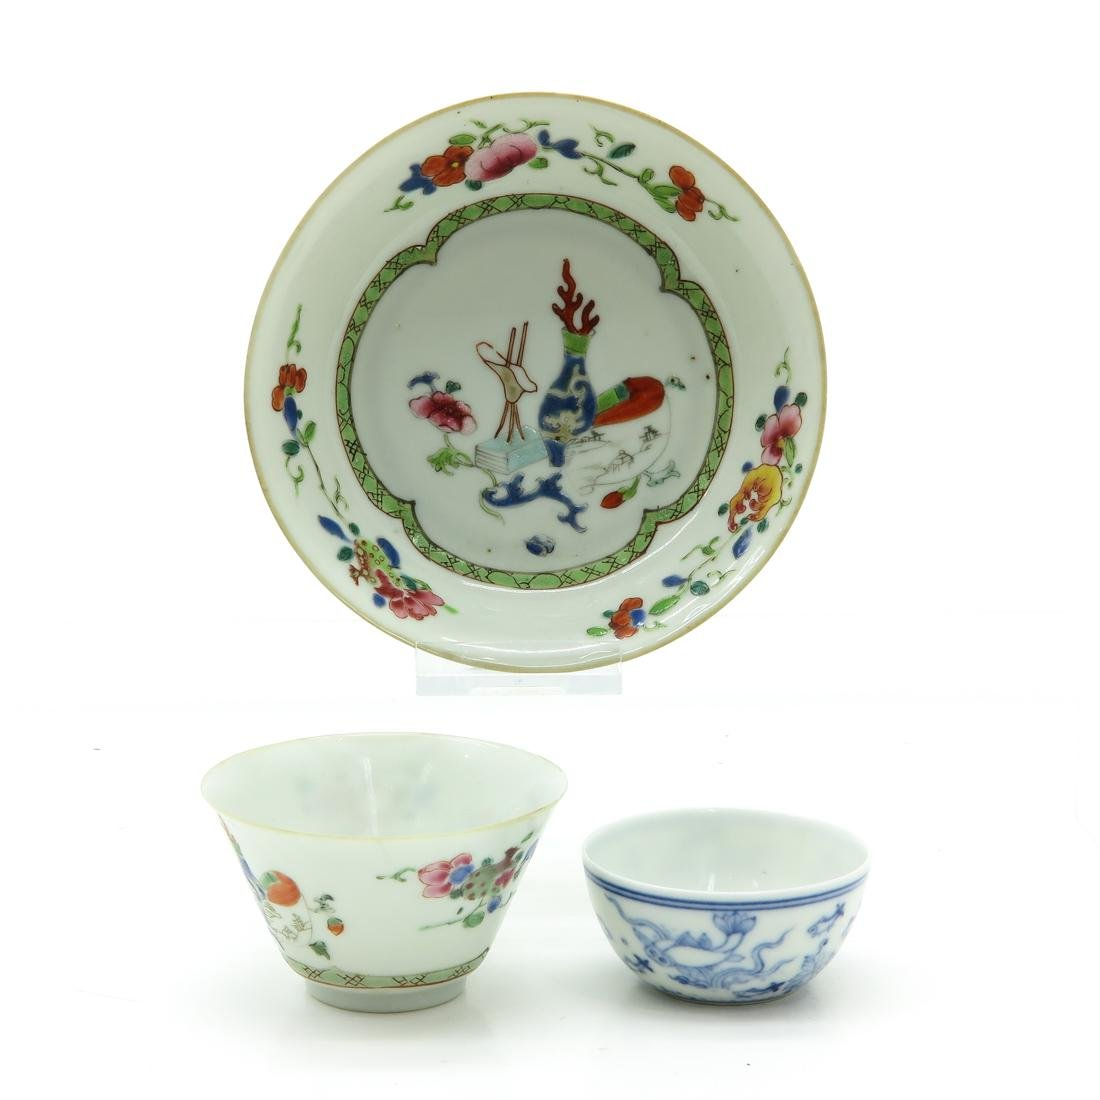 Cups and Saucer - 2